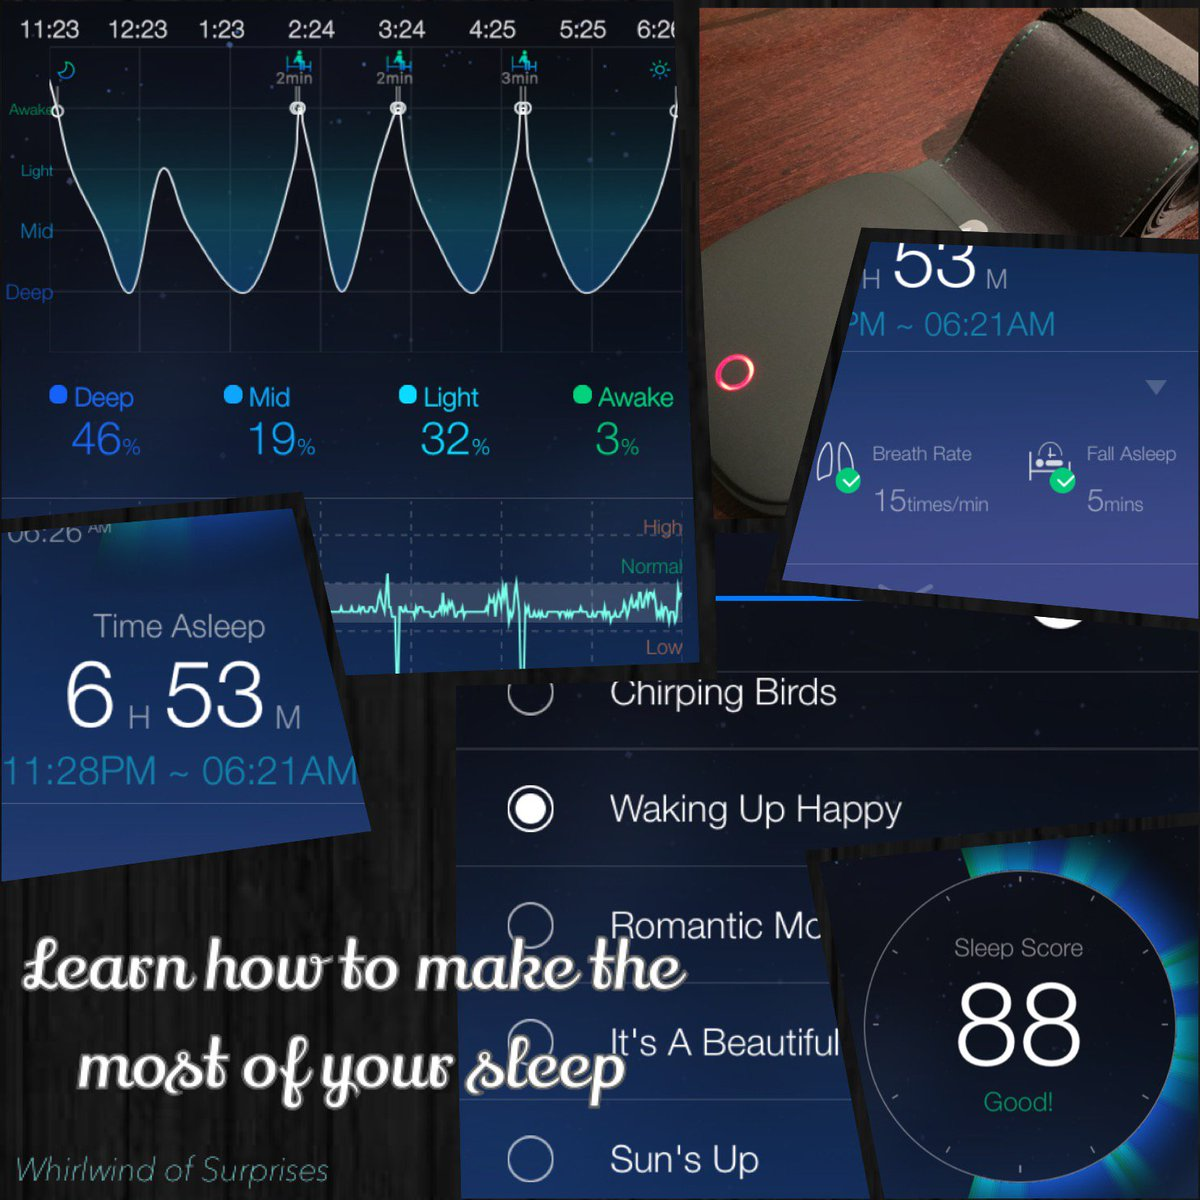 Sleep Tips with a sleep monitor